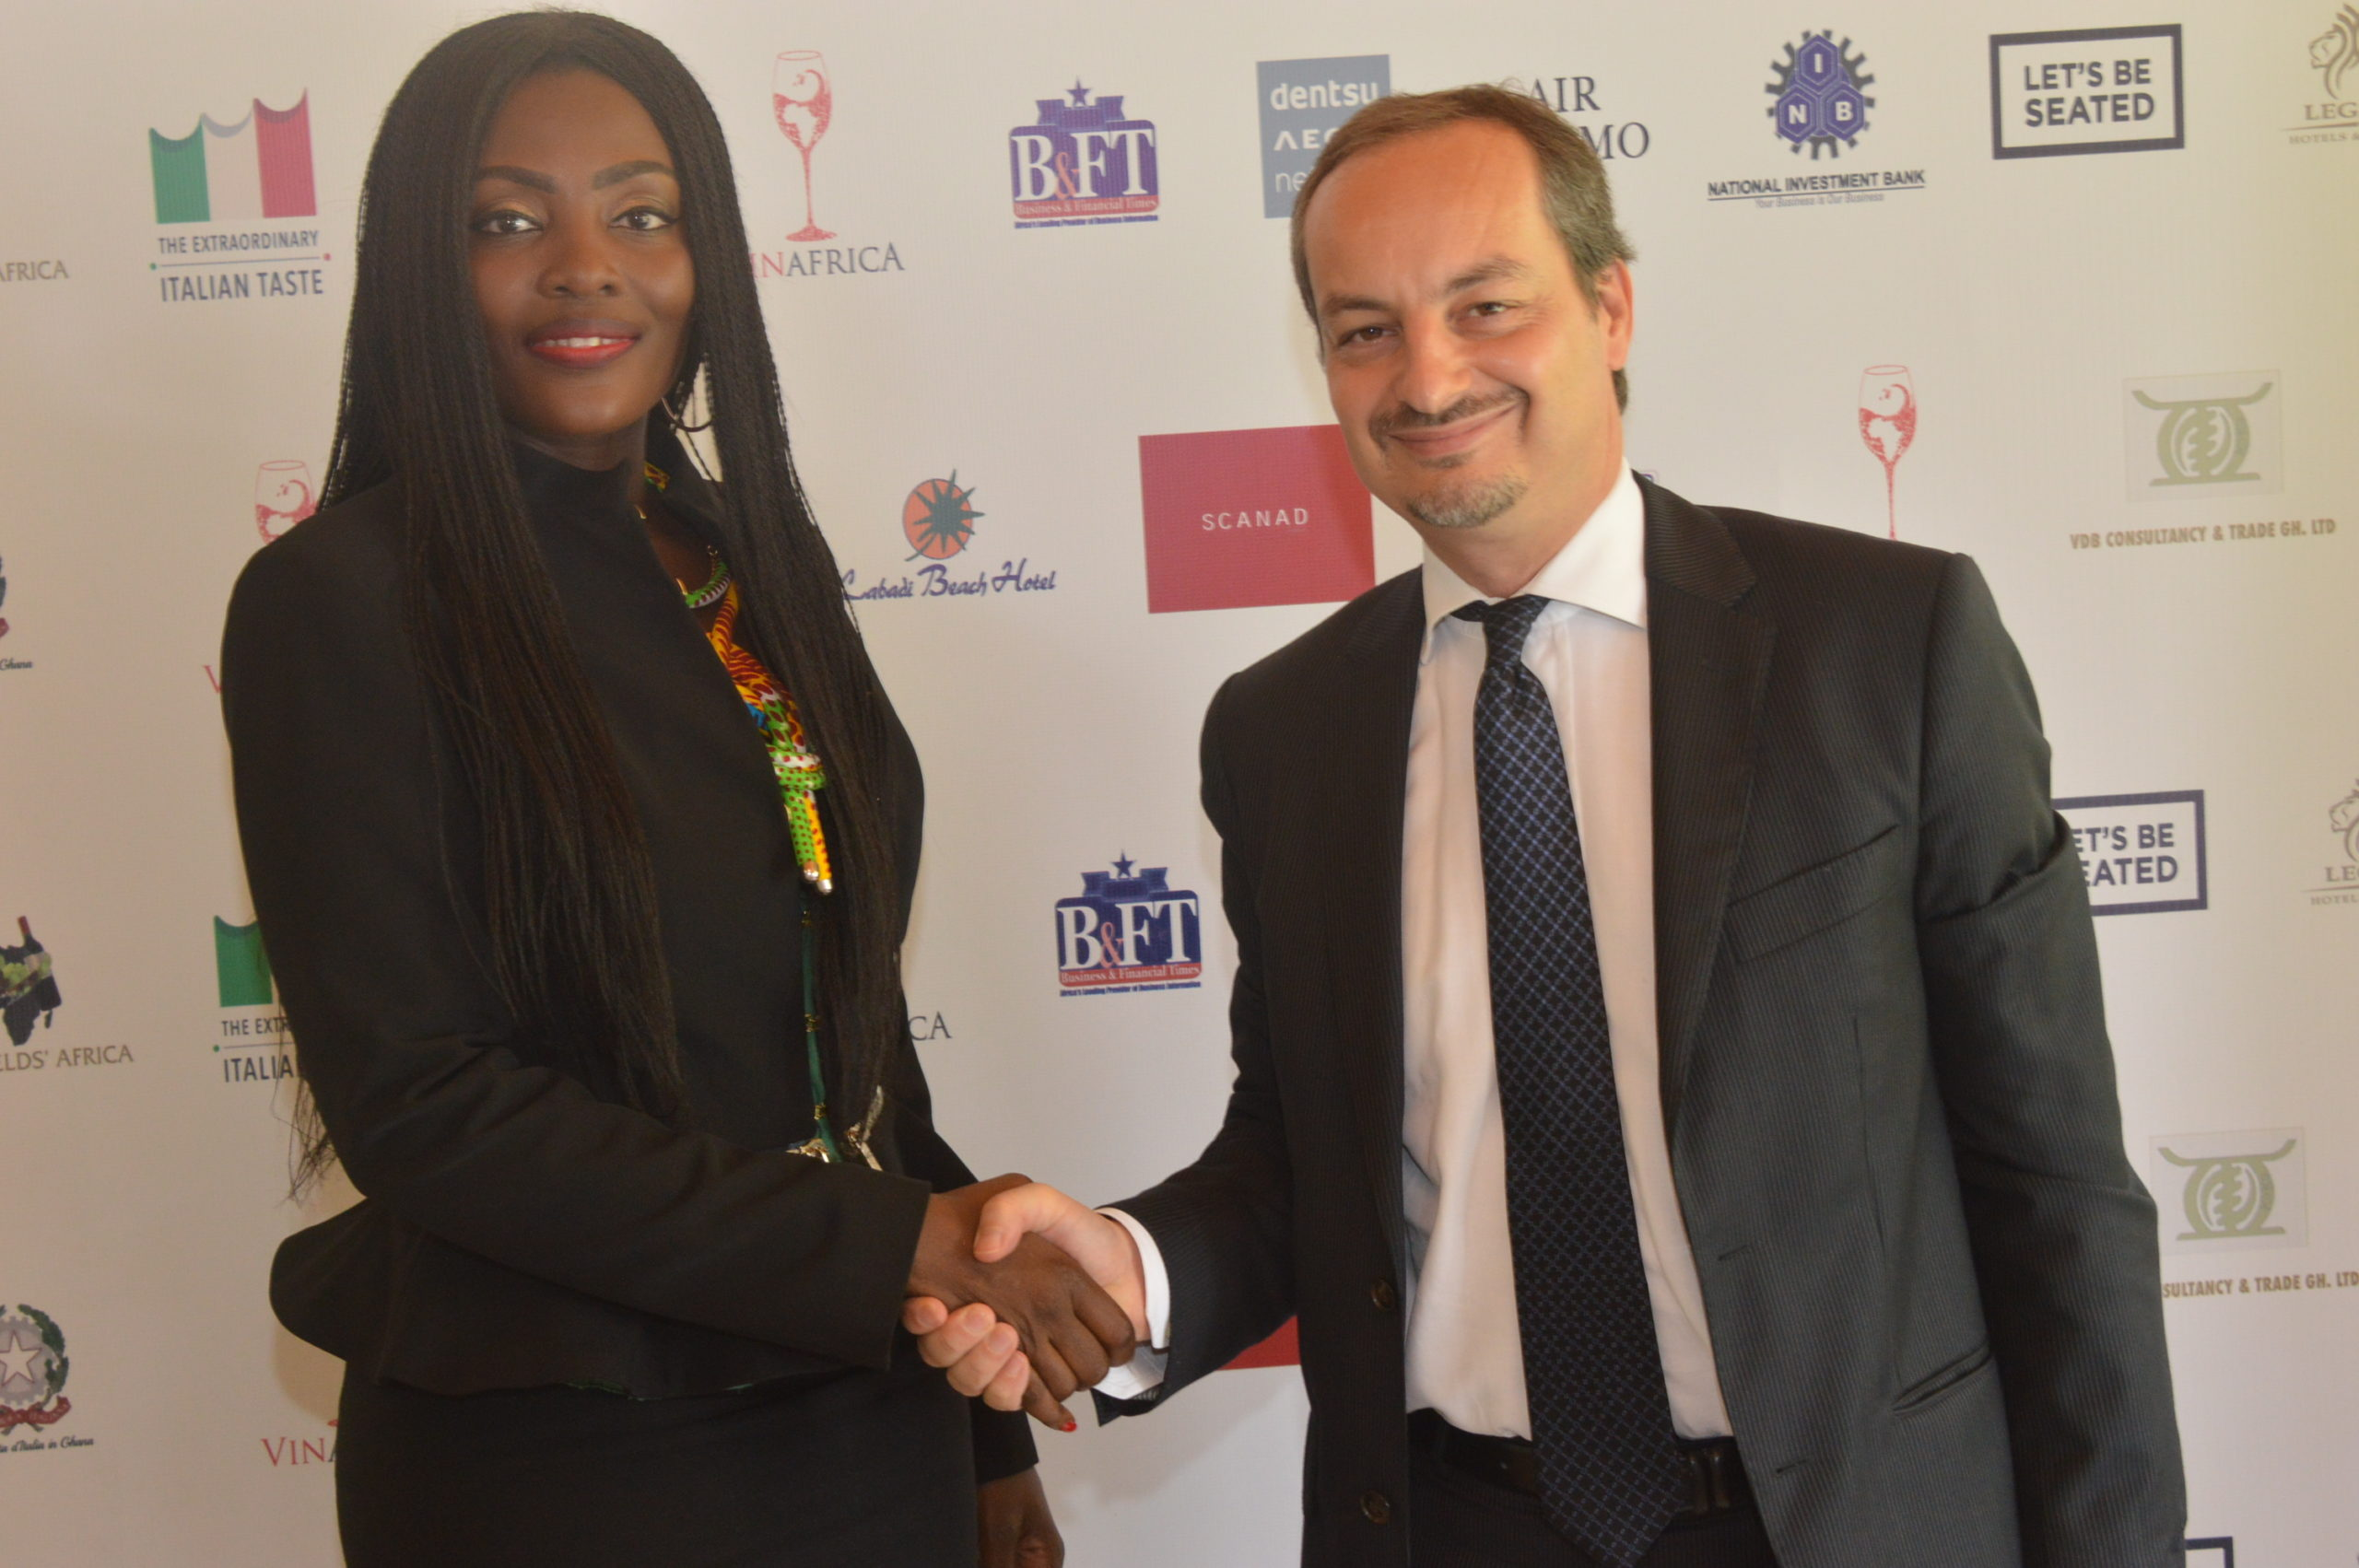 2ND VINAFRICA INTERNATIONAL WINE FESTIVAL AND TRADE SHOW PROMOTES GOOD WINE & FOOD IN WEST AFRICA